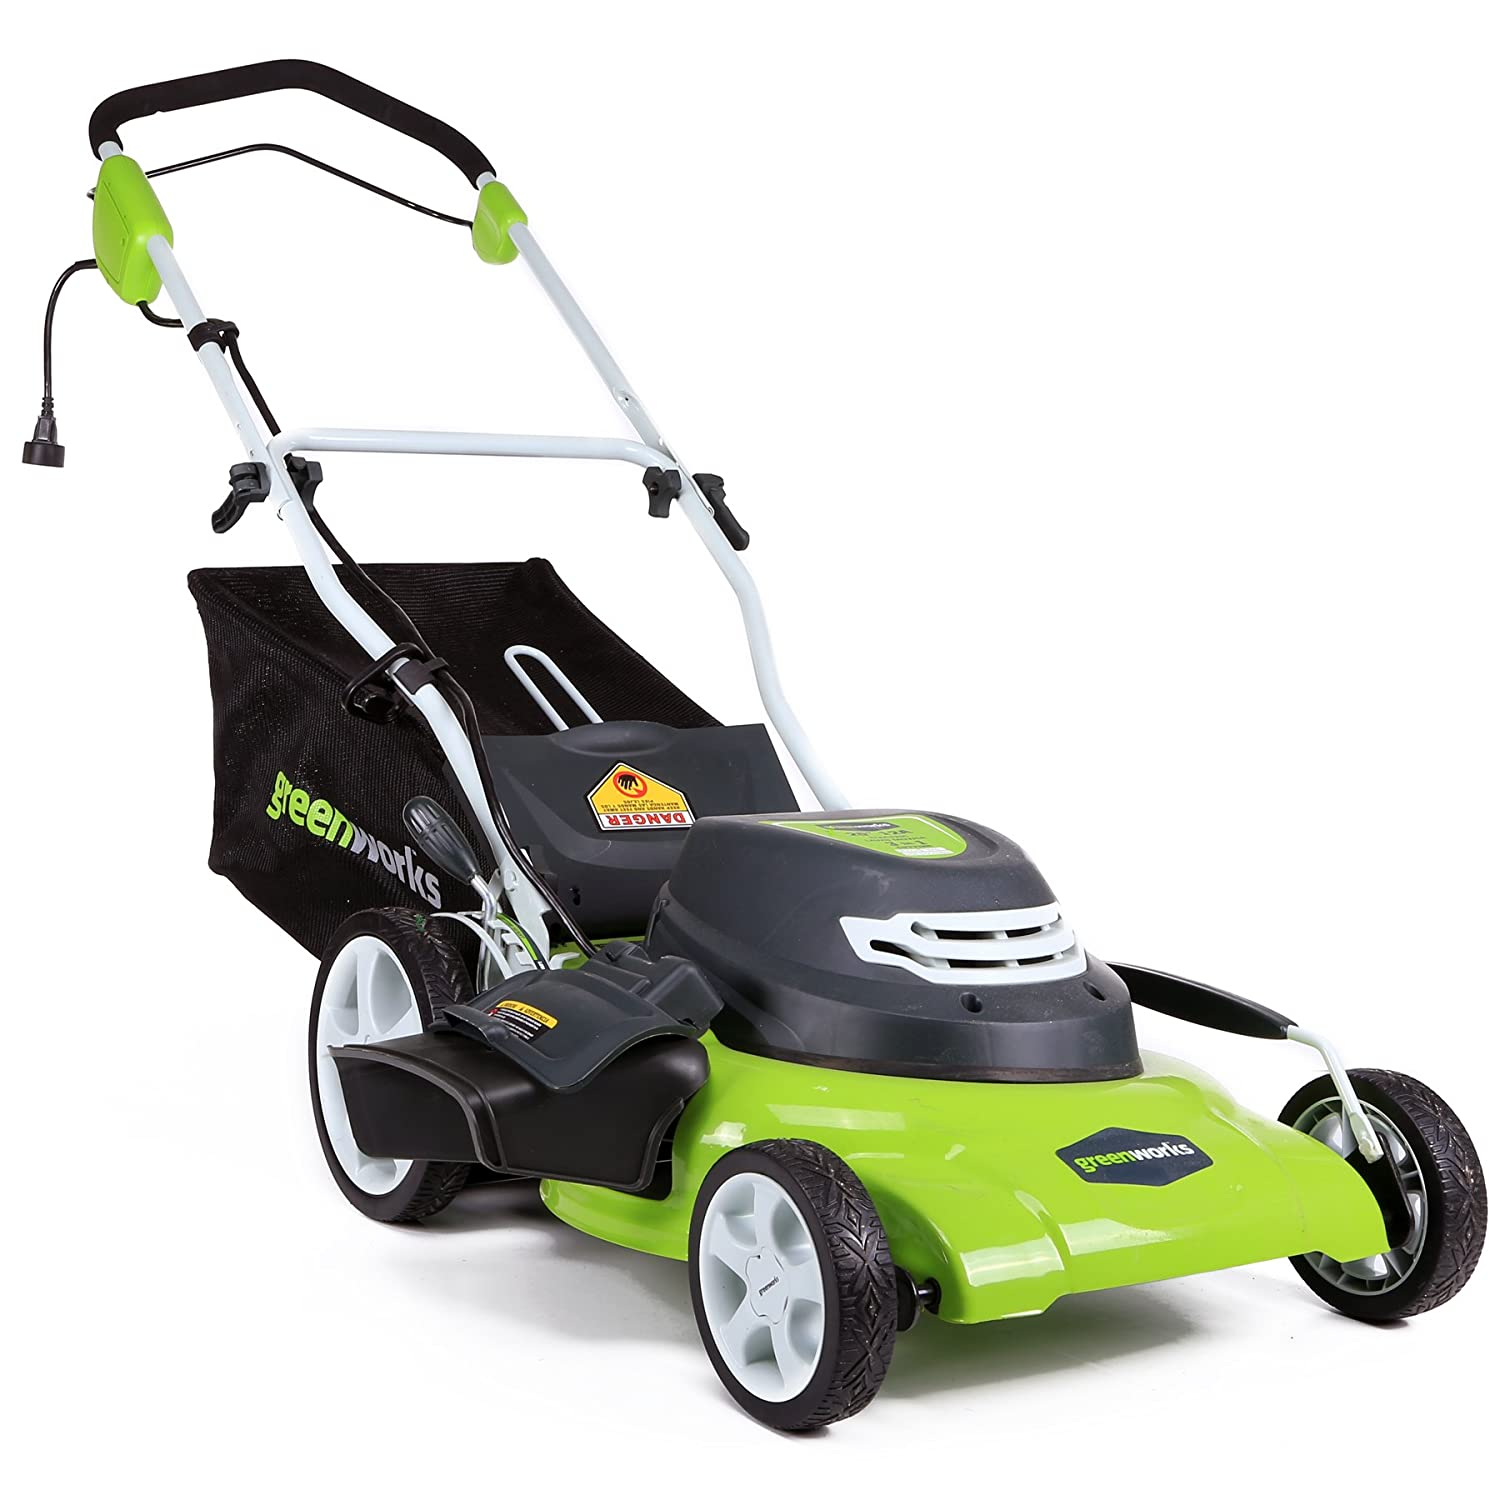 GreenWorks 25022 12-amp Corded 20-inch Lawn Mower